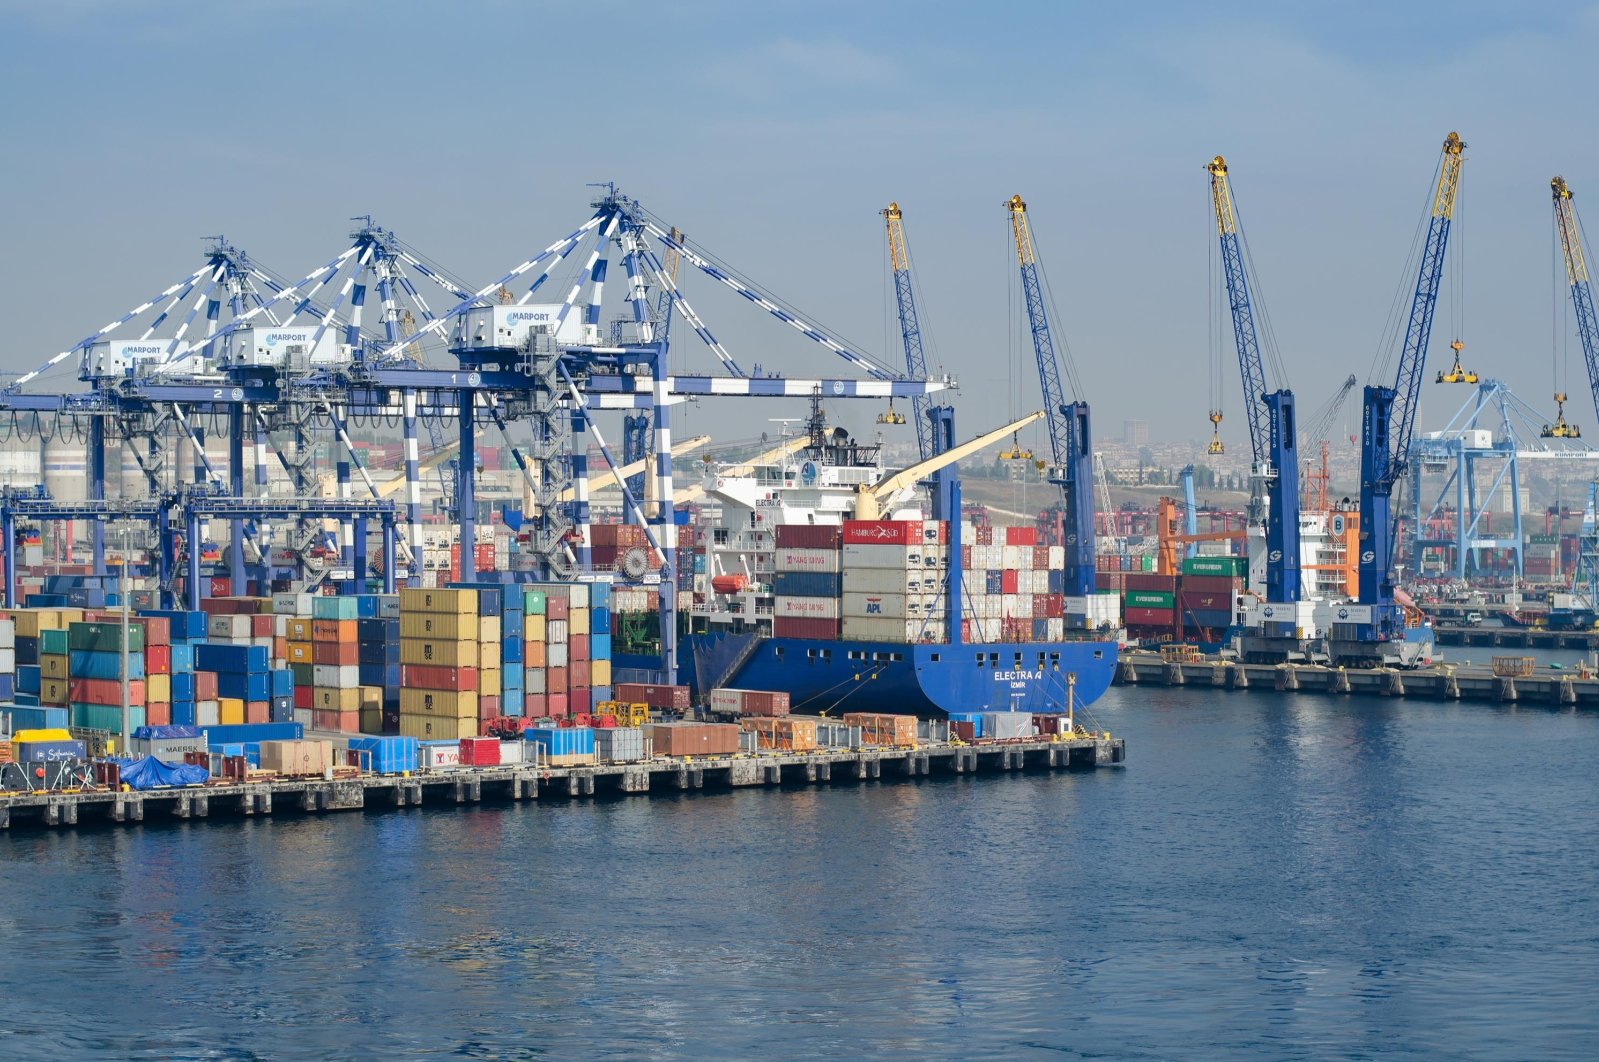 A container vessel is seen at the port of Ambarlı in Istanbul, Turkey, Oct. 3, 2016. (Shutterstock Photo)